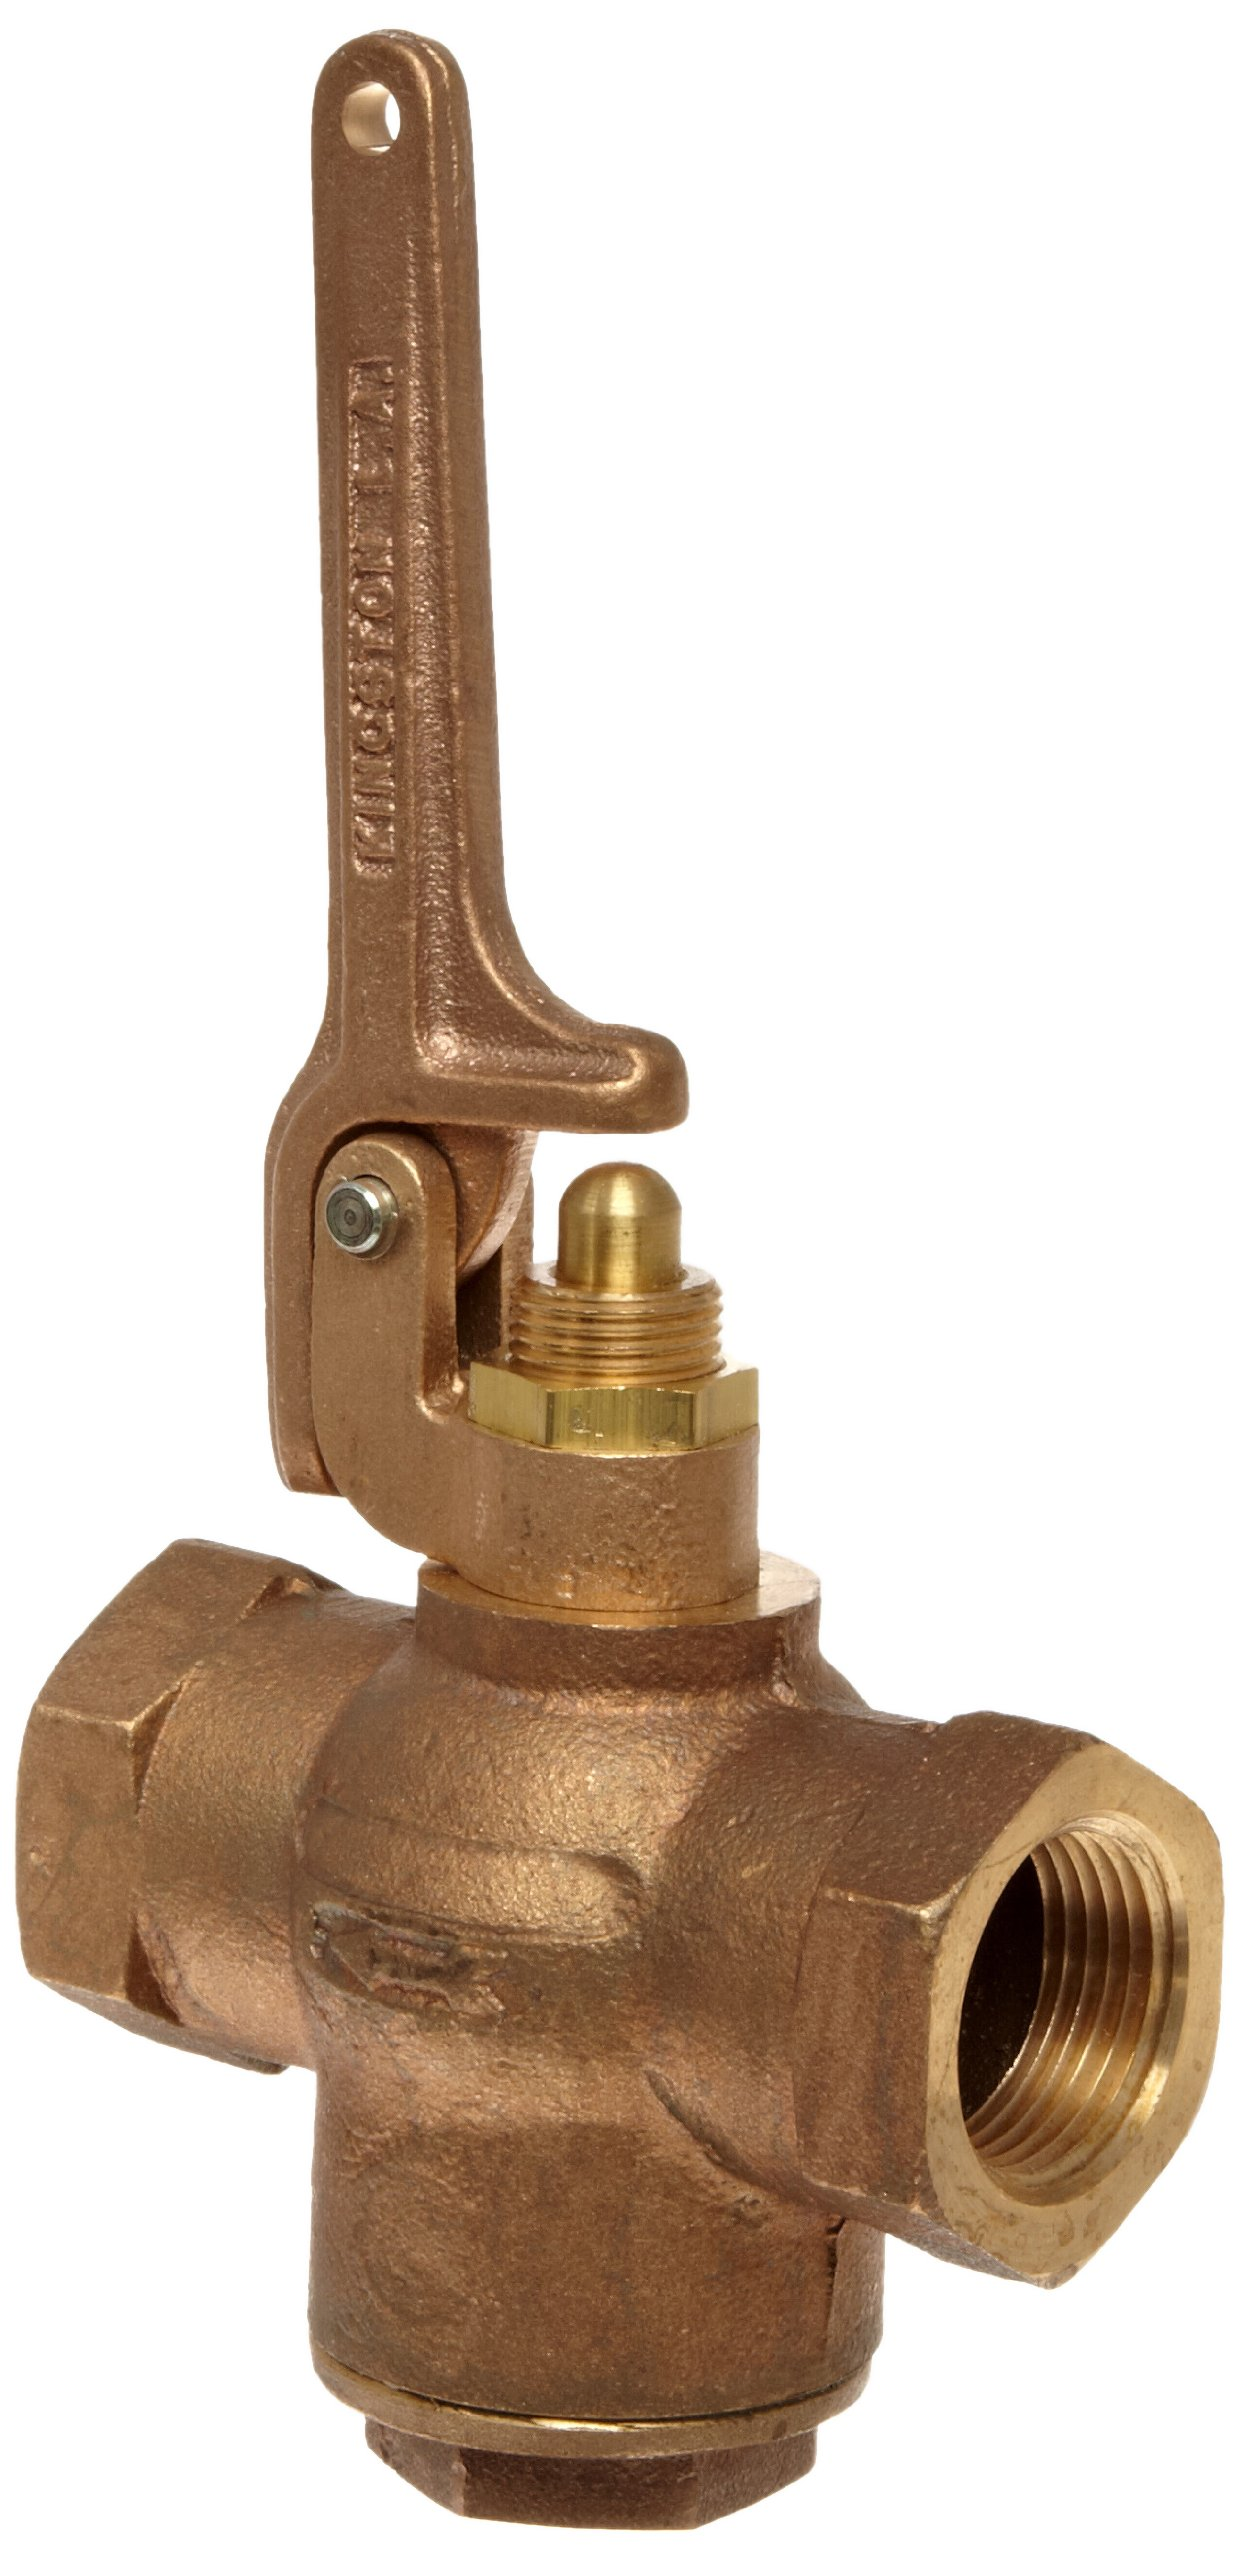 Kingston 305A Series Brass Quick Opening Flow Control Valve, Pull Lever, 1'' NPT Female